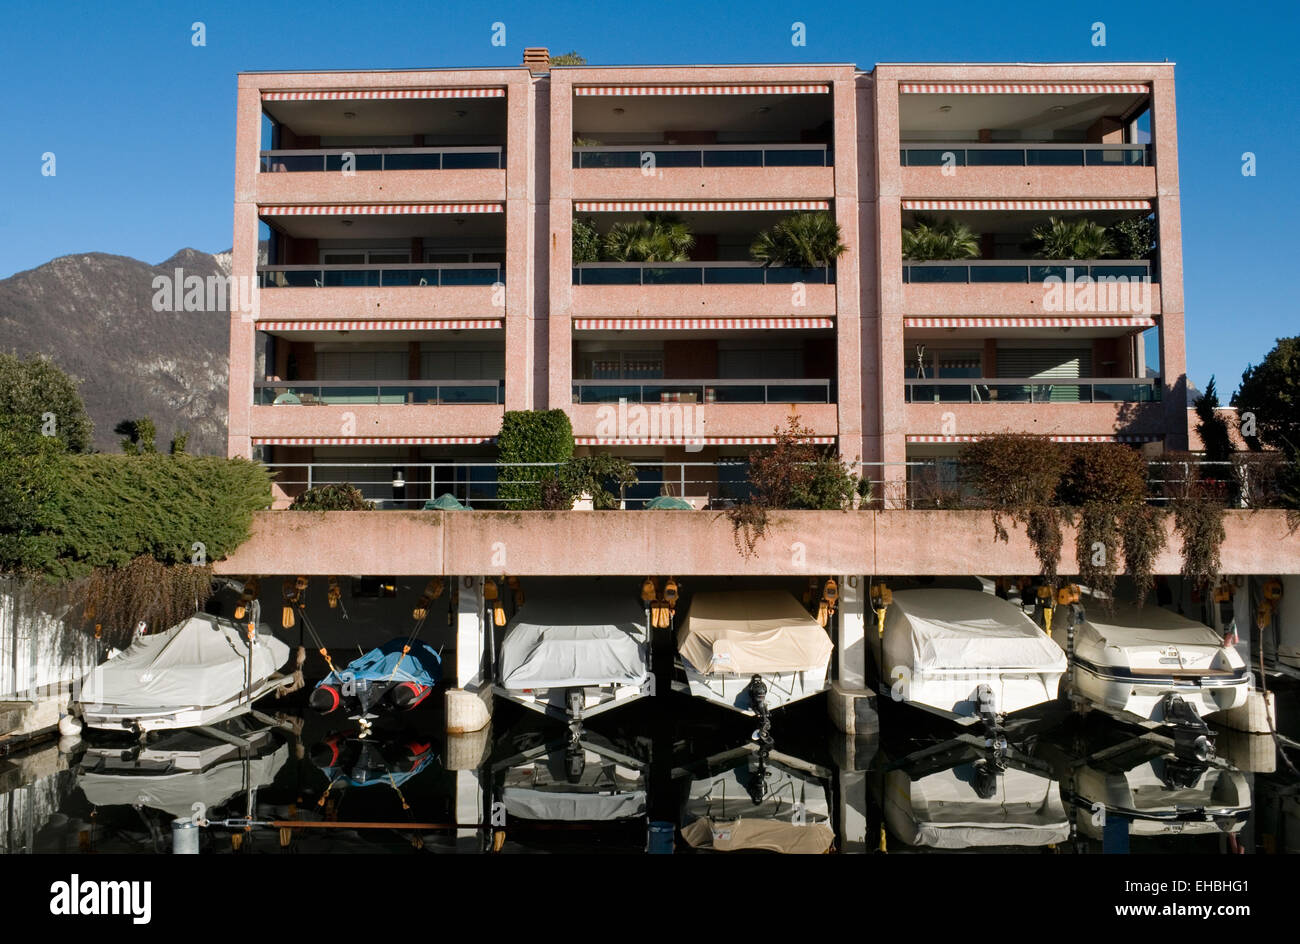 lakefront luxury apartments  with own mooring, Melide, Lake Lugano, Switzerland - Stock Image